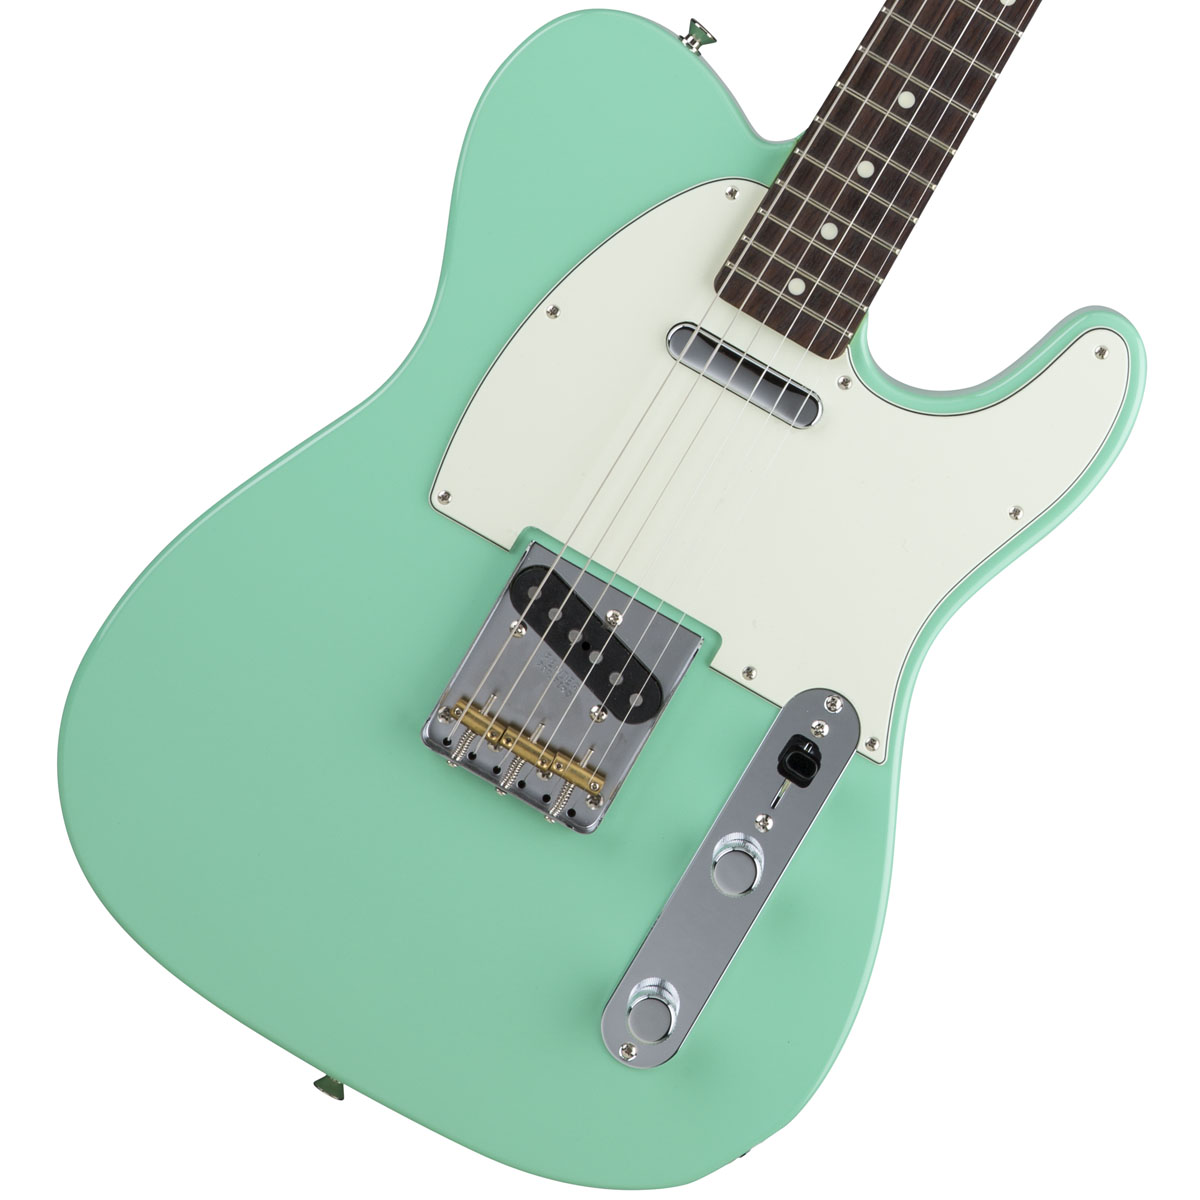 Fender / Made in Japan Hybrid 60s Telecaster Surf Green【YRK】